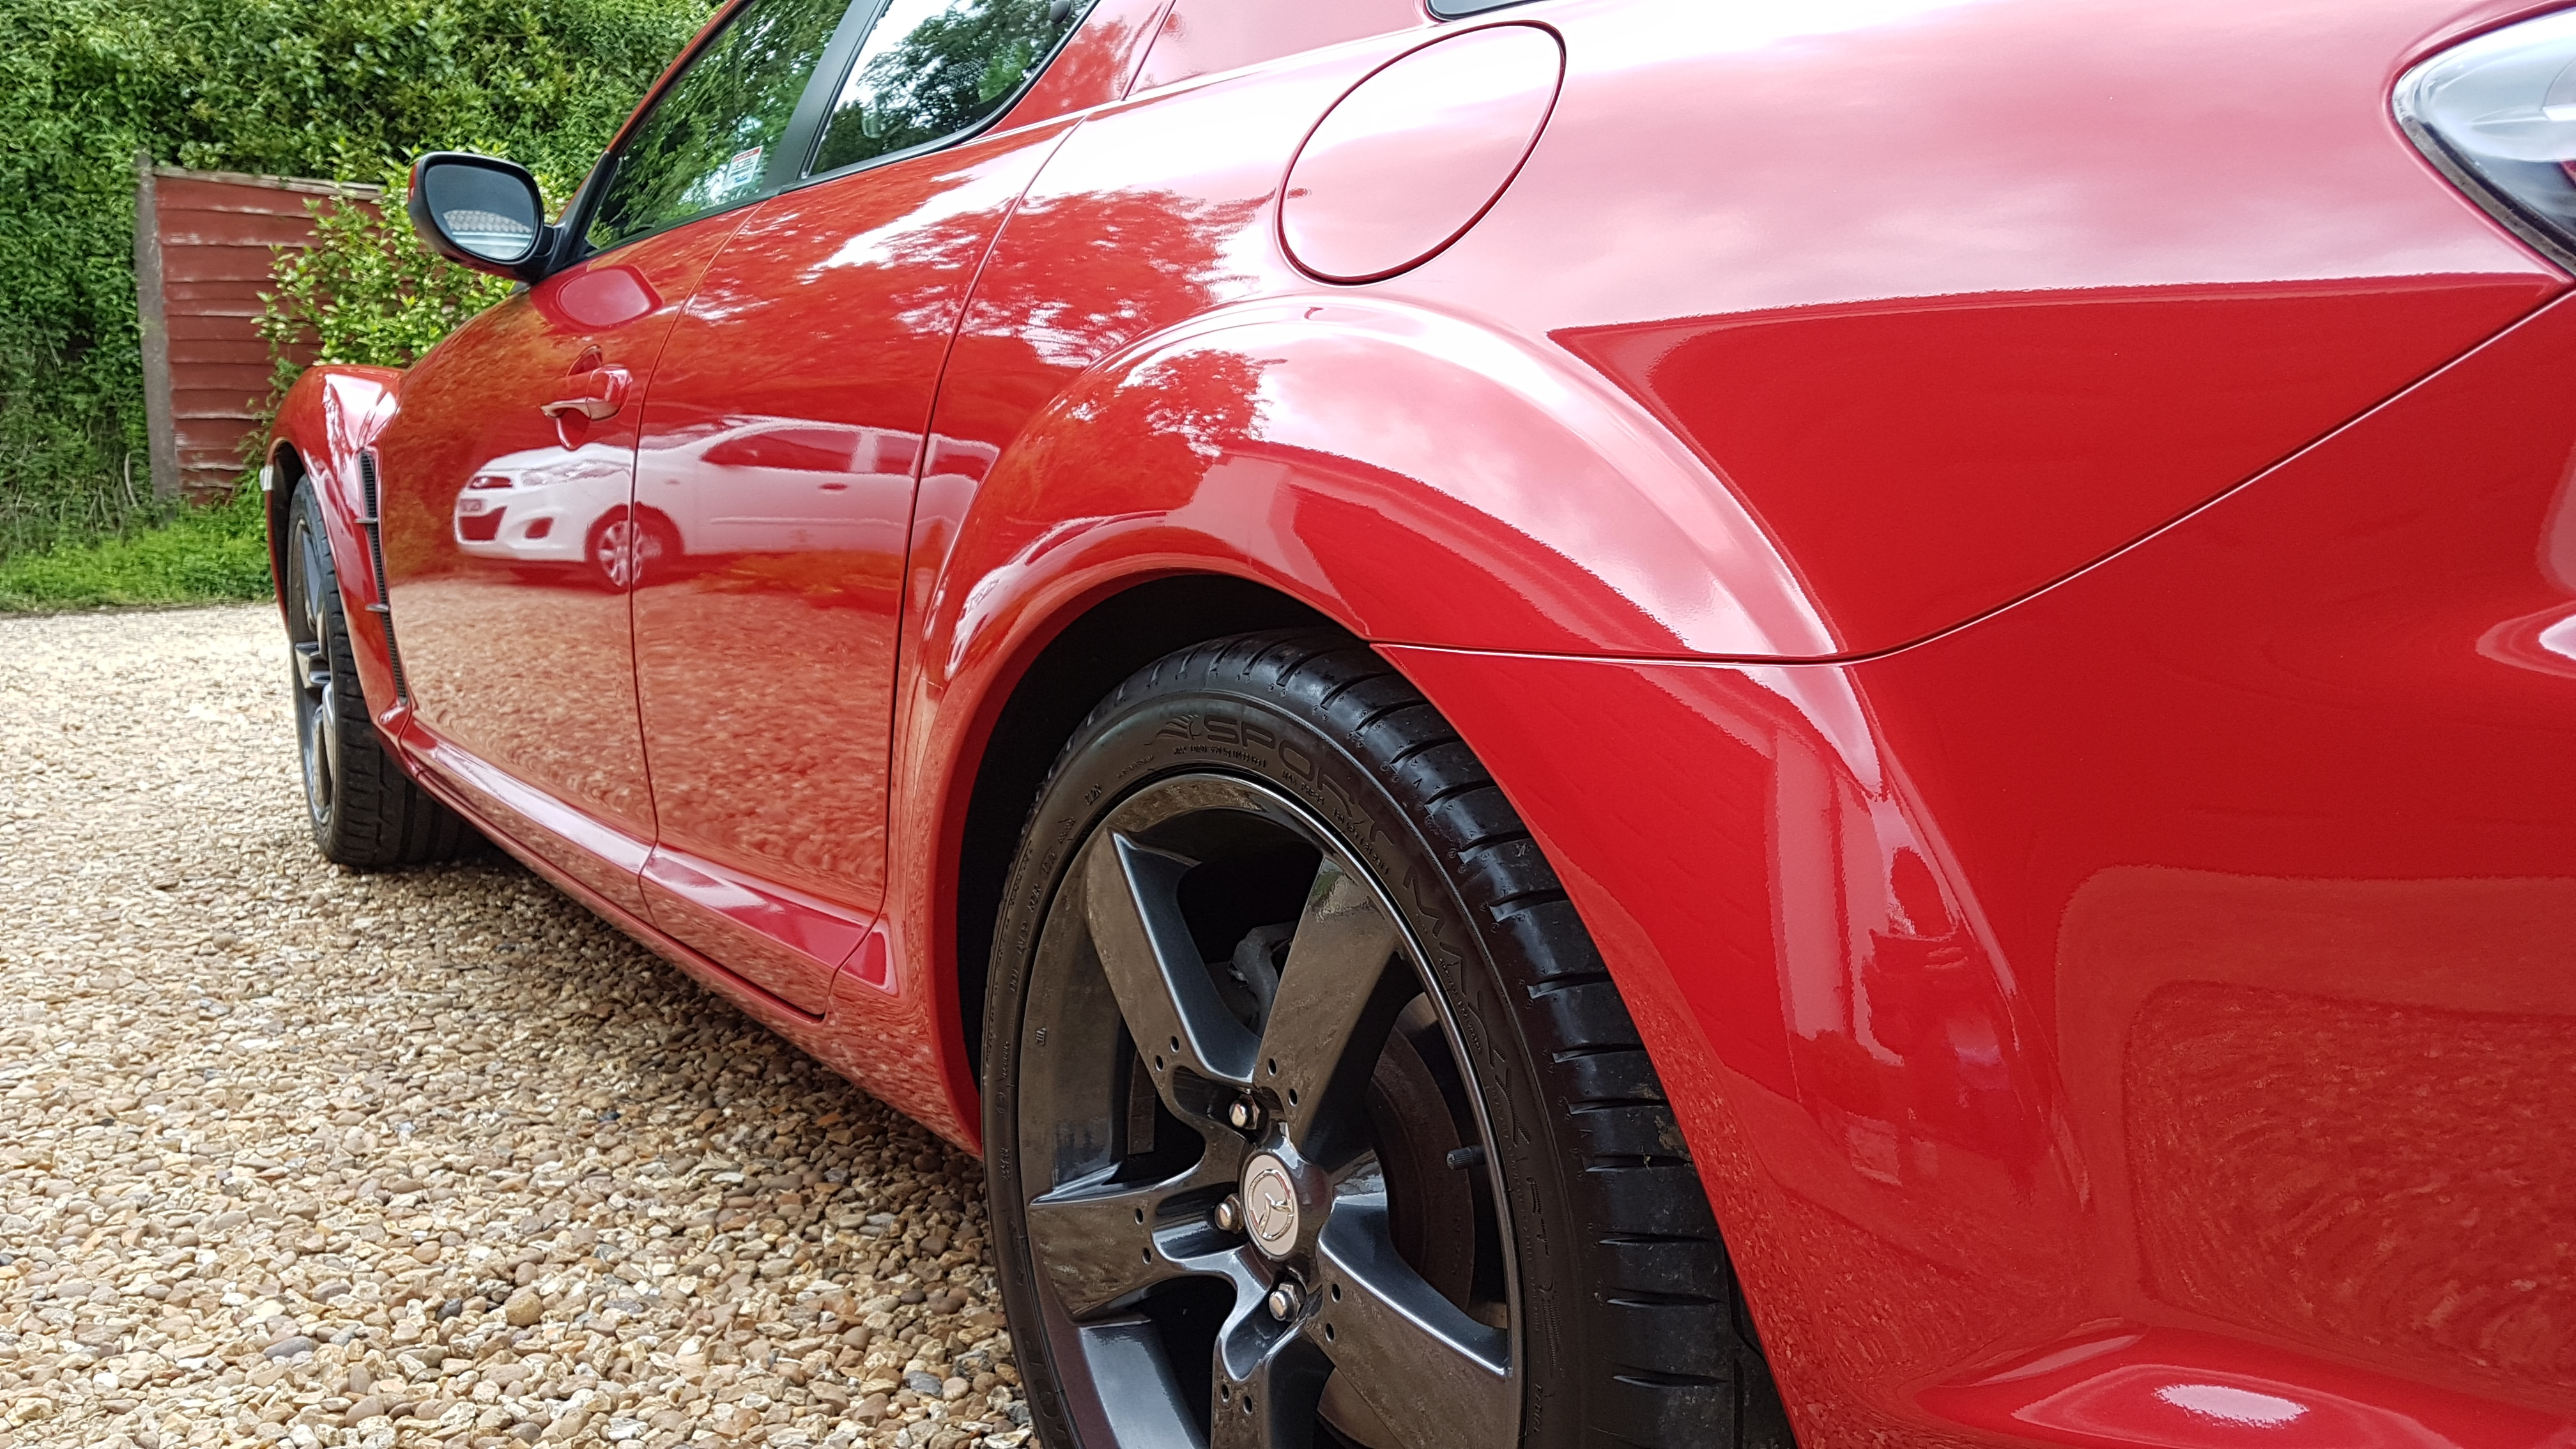 Mark Longland RX-8, Mark Longland, Mazda, Mazda RX-8, RX-8, sports car, coupe, motoring, automotive, car review, your cars, buying an RX-8, should I buy an RX-8, classic car, retro car, japanese car, motoring, automotive, ebay, ebay motrors, autotrader